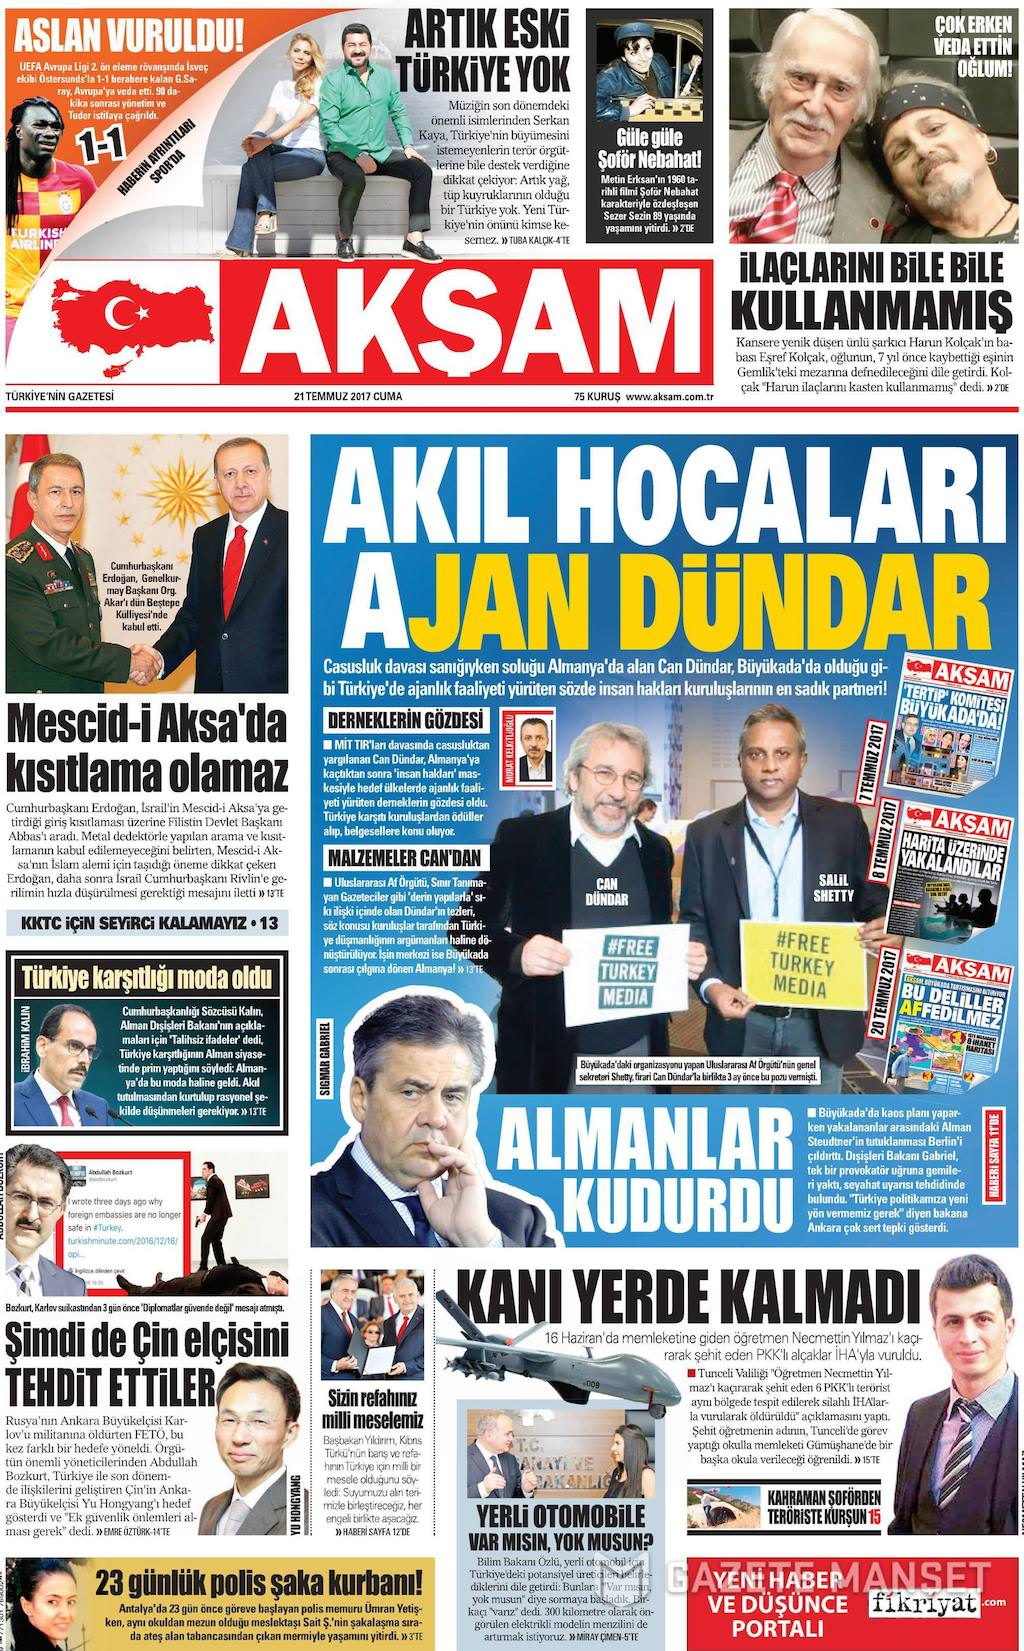 Pro-govt Aksam daily came out with the headline, 'Their Mastermind is Agent Dundar' on 21 July. width=